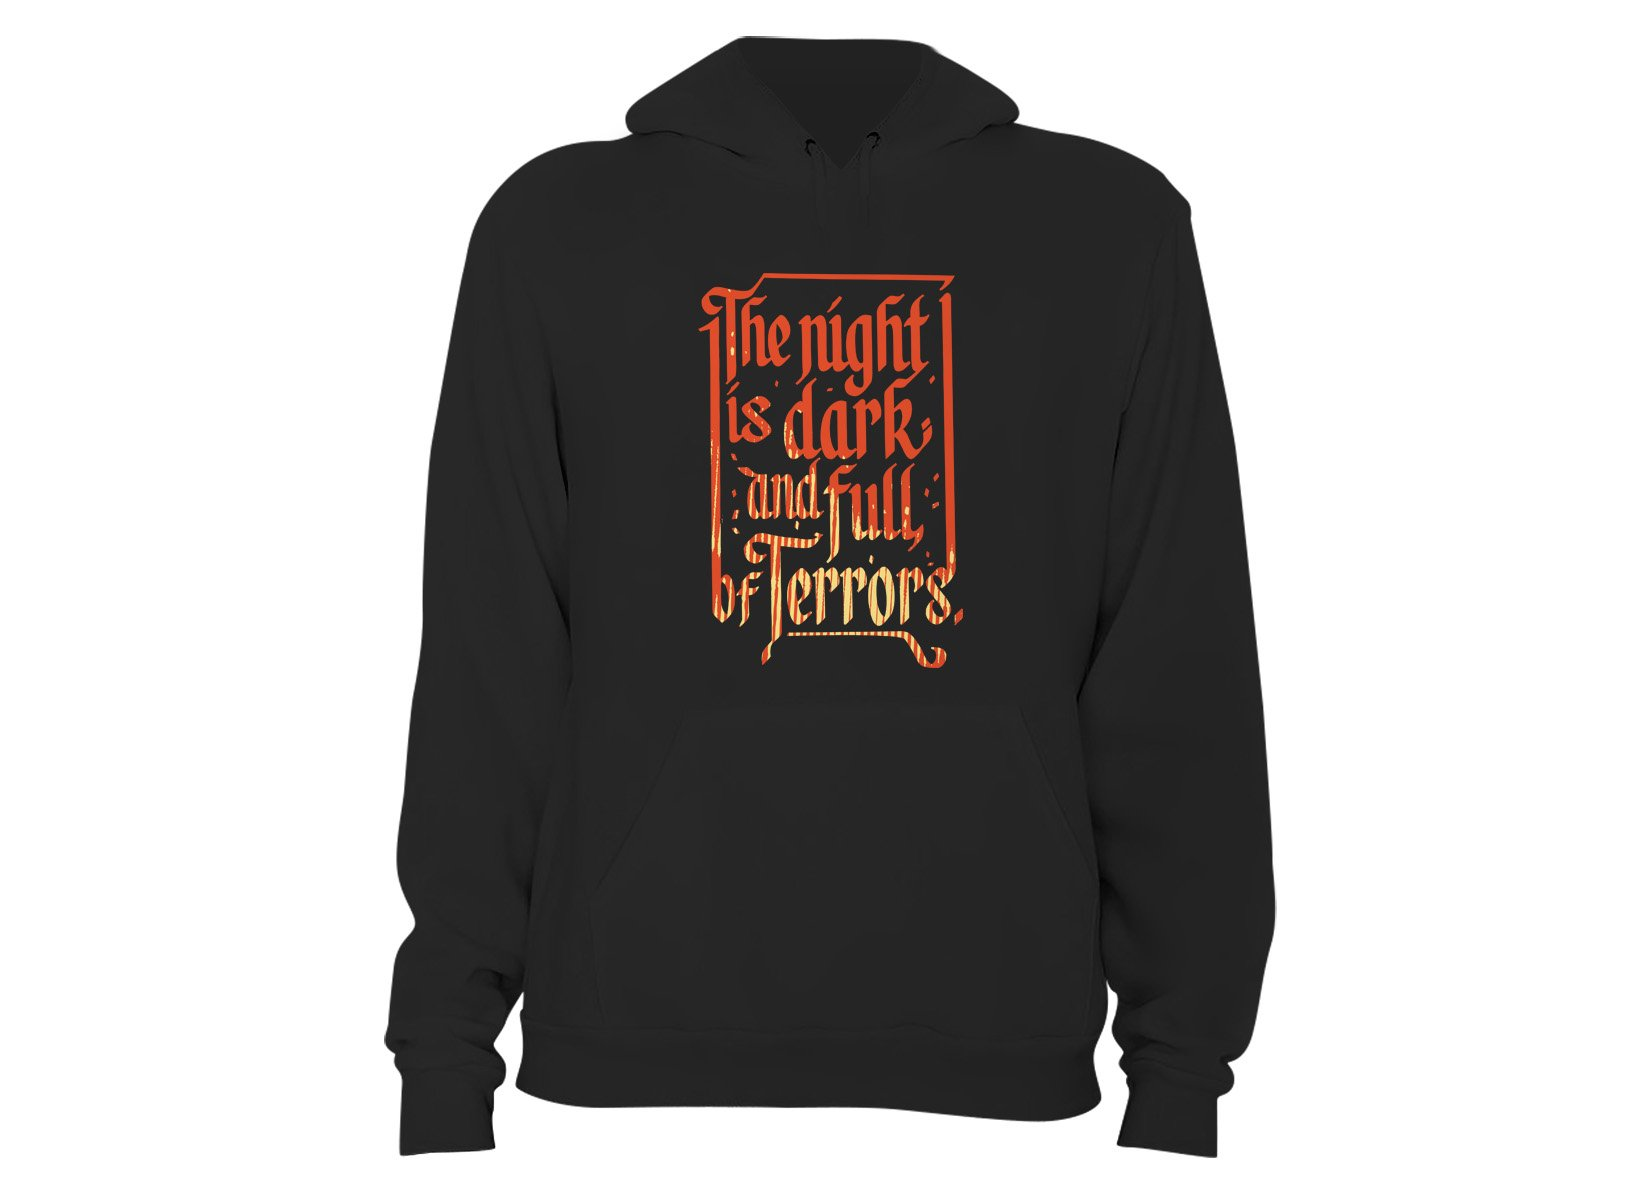 The Night Is Dark And Full Of Terrors on Hoodie